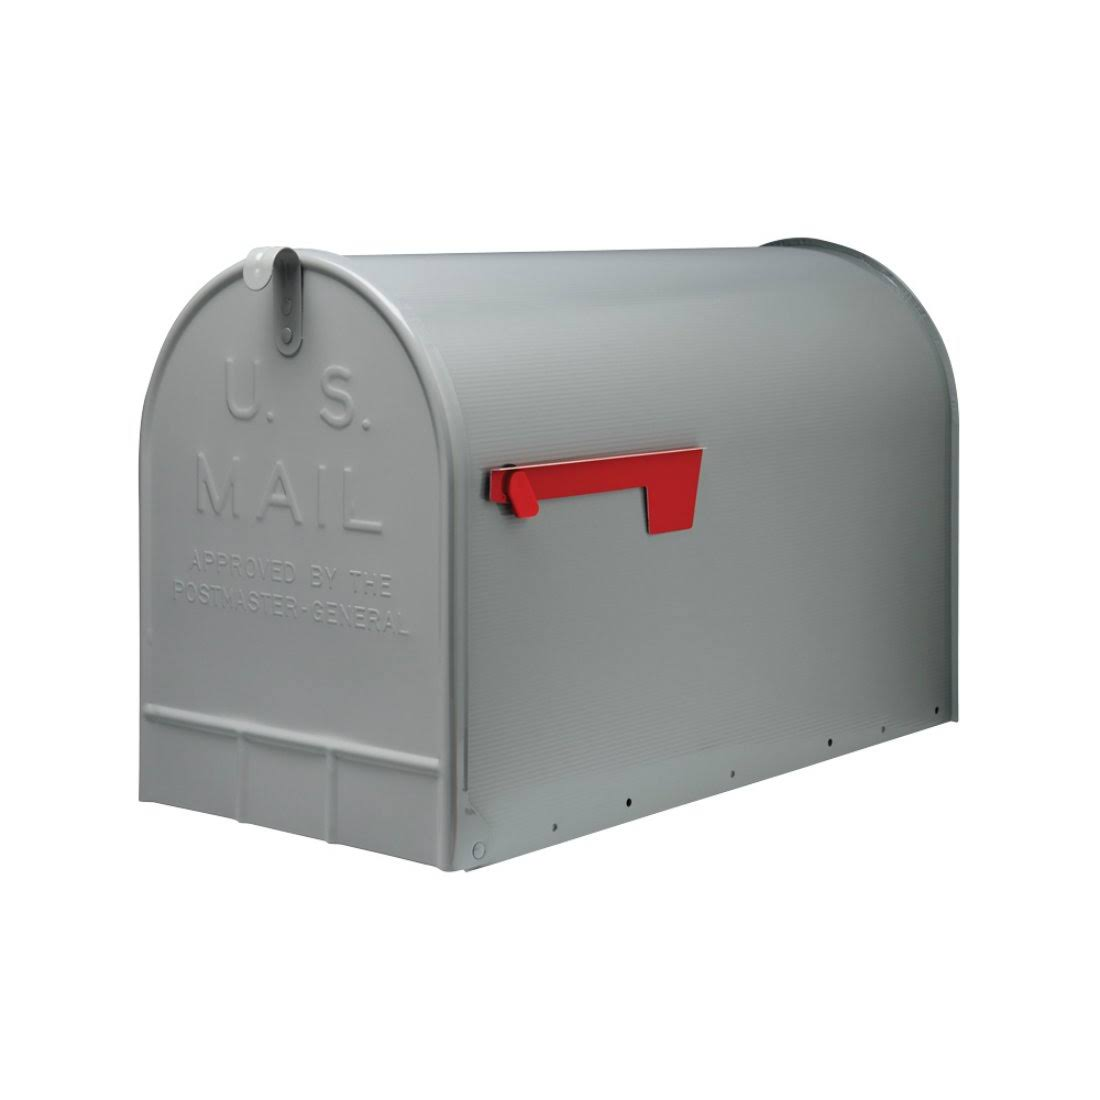 Solar Group Jumbo Heavy-Duty Post-Mount Mailbox - Gray